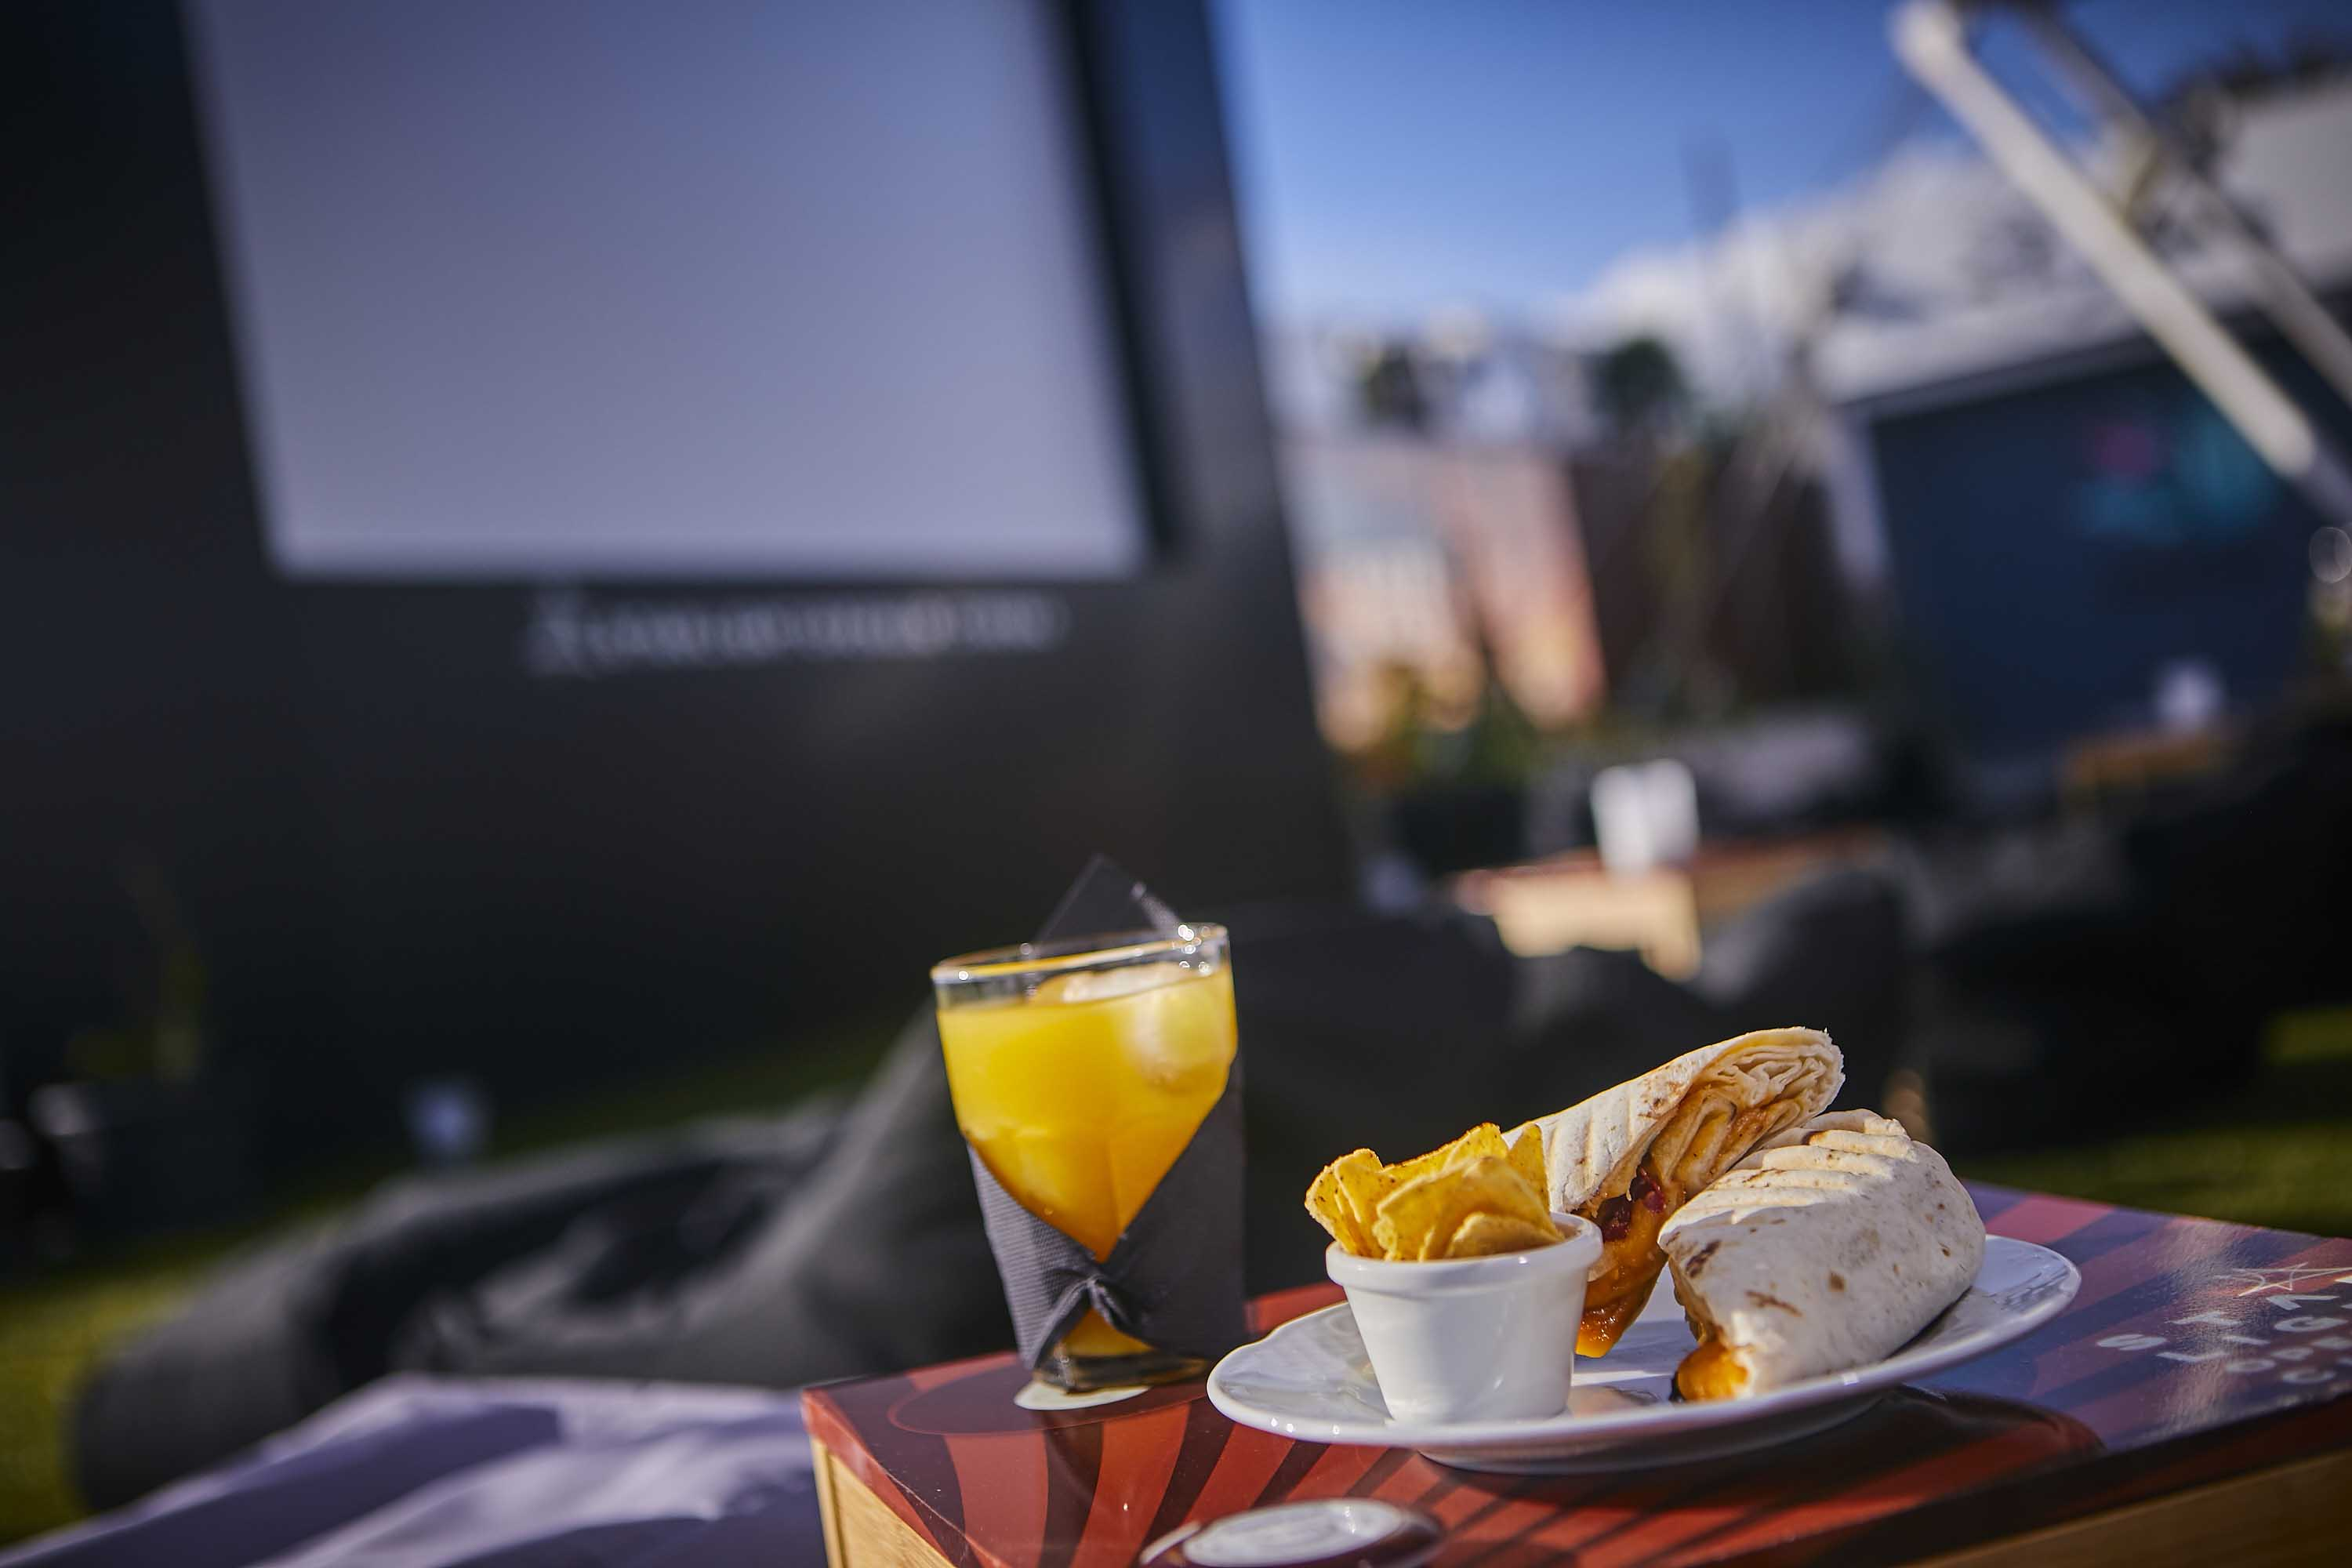 Movies and food at Rooftop Lanzarote puerto del carmen